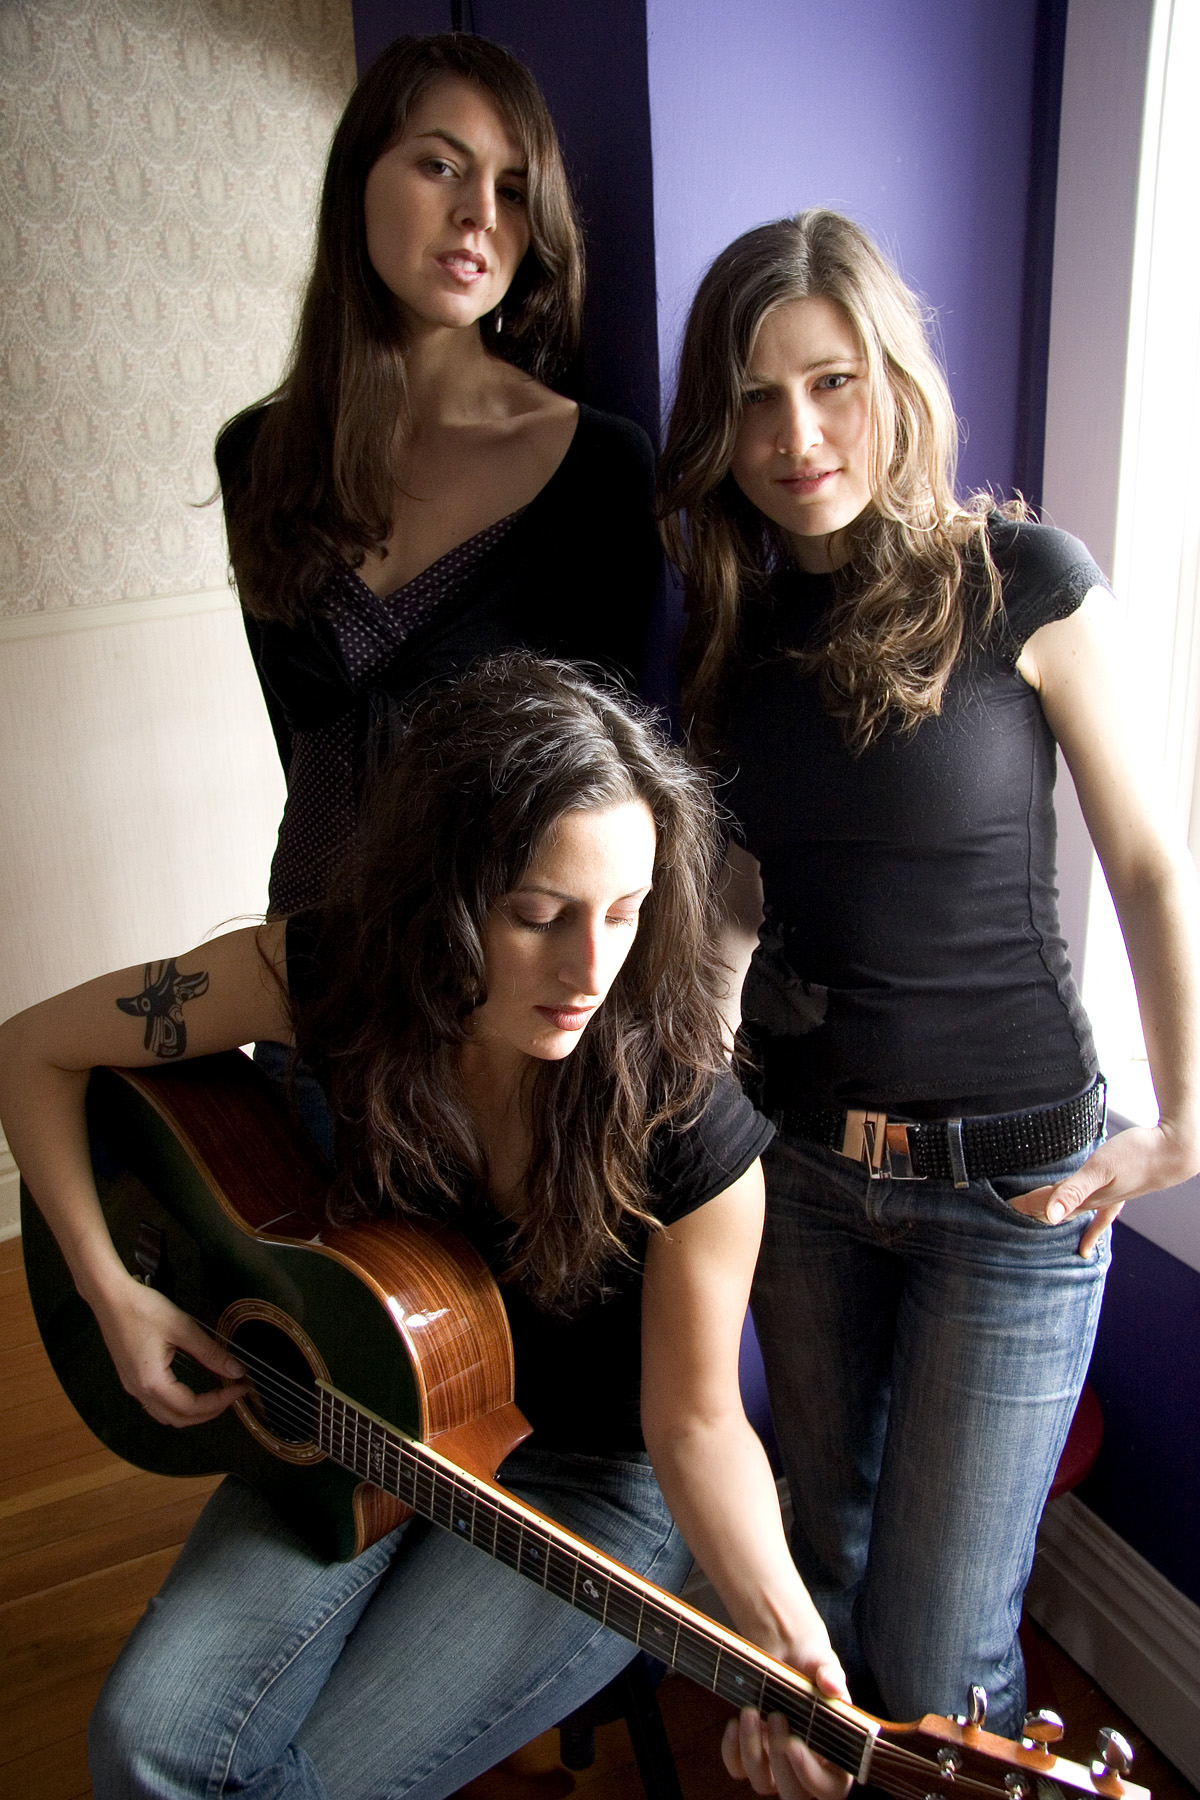 The Wailin' Jennies pose for a picture with a guitar